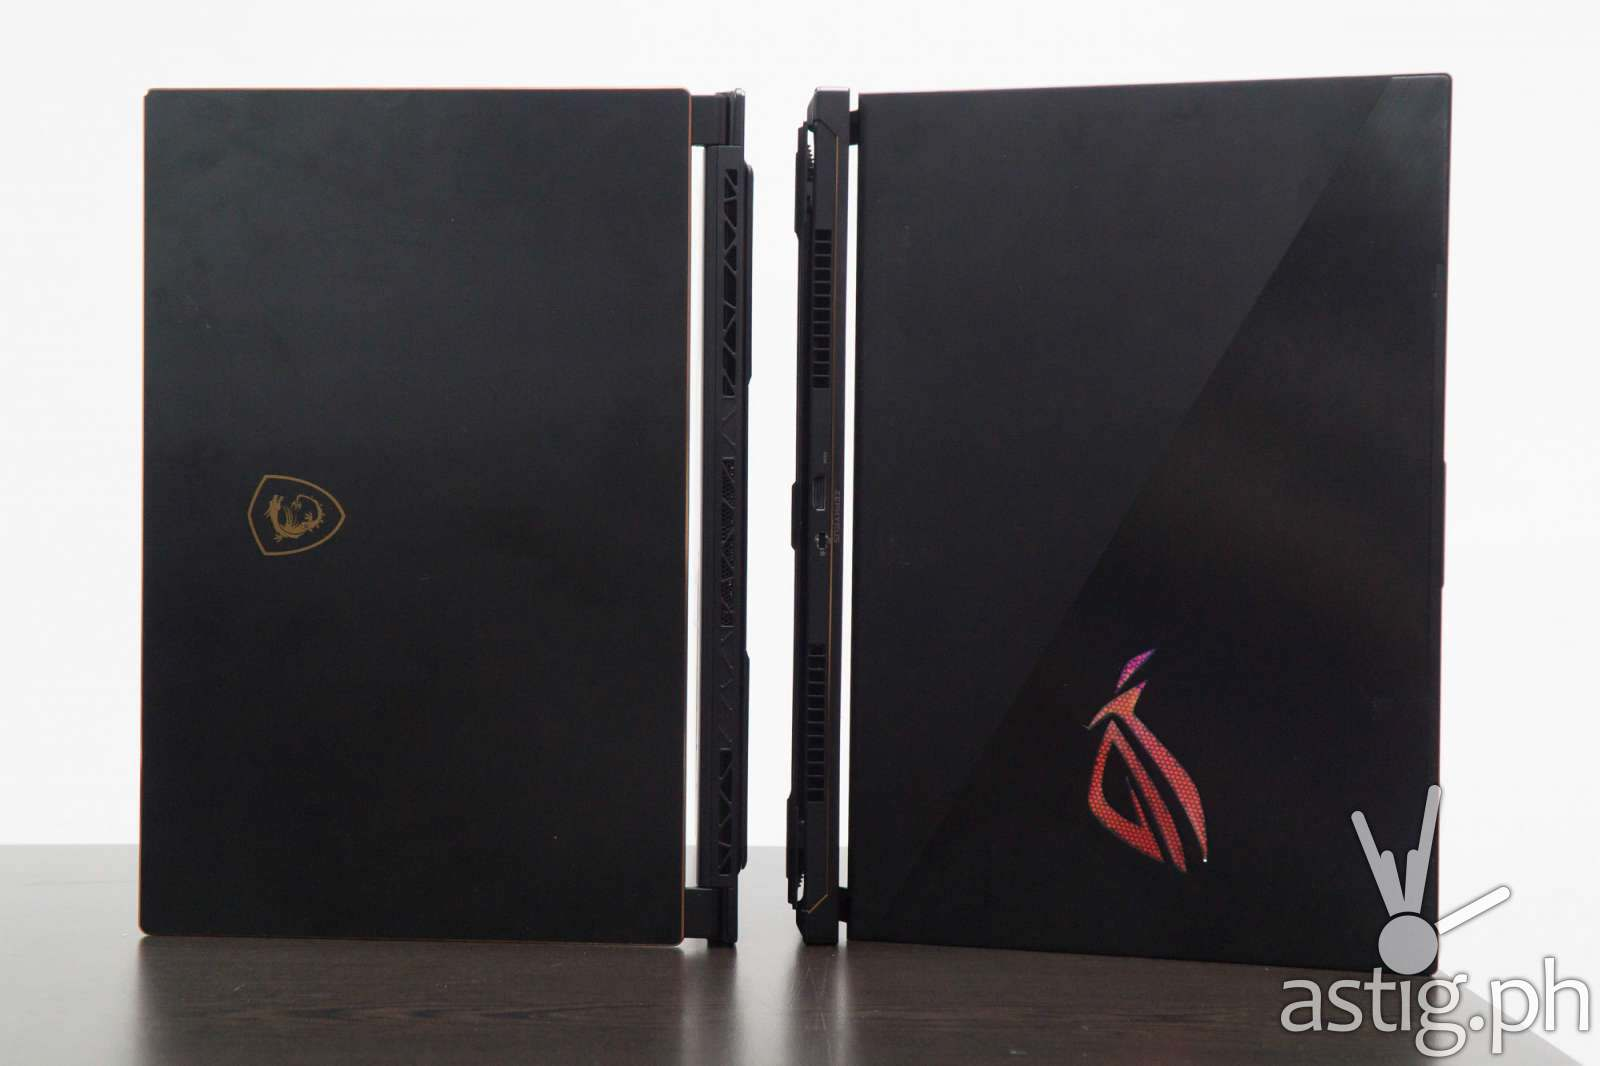 ROG Zephyrus S vs MSI GS65 Stealth Thin 8RF - Back